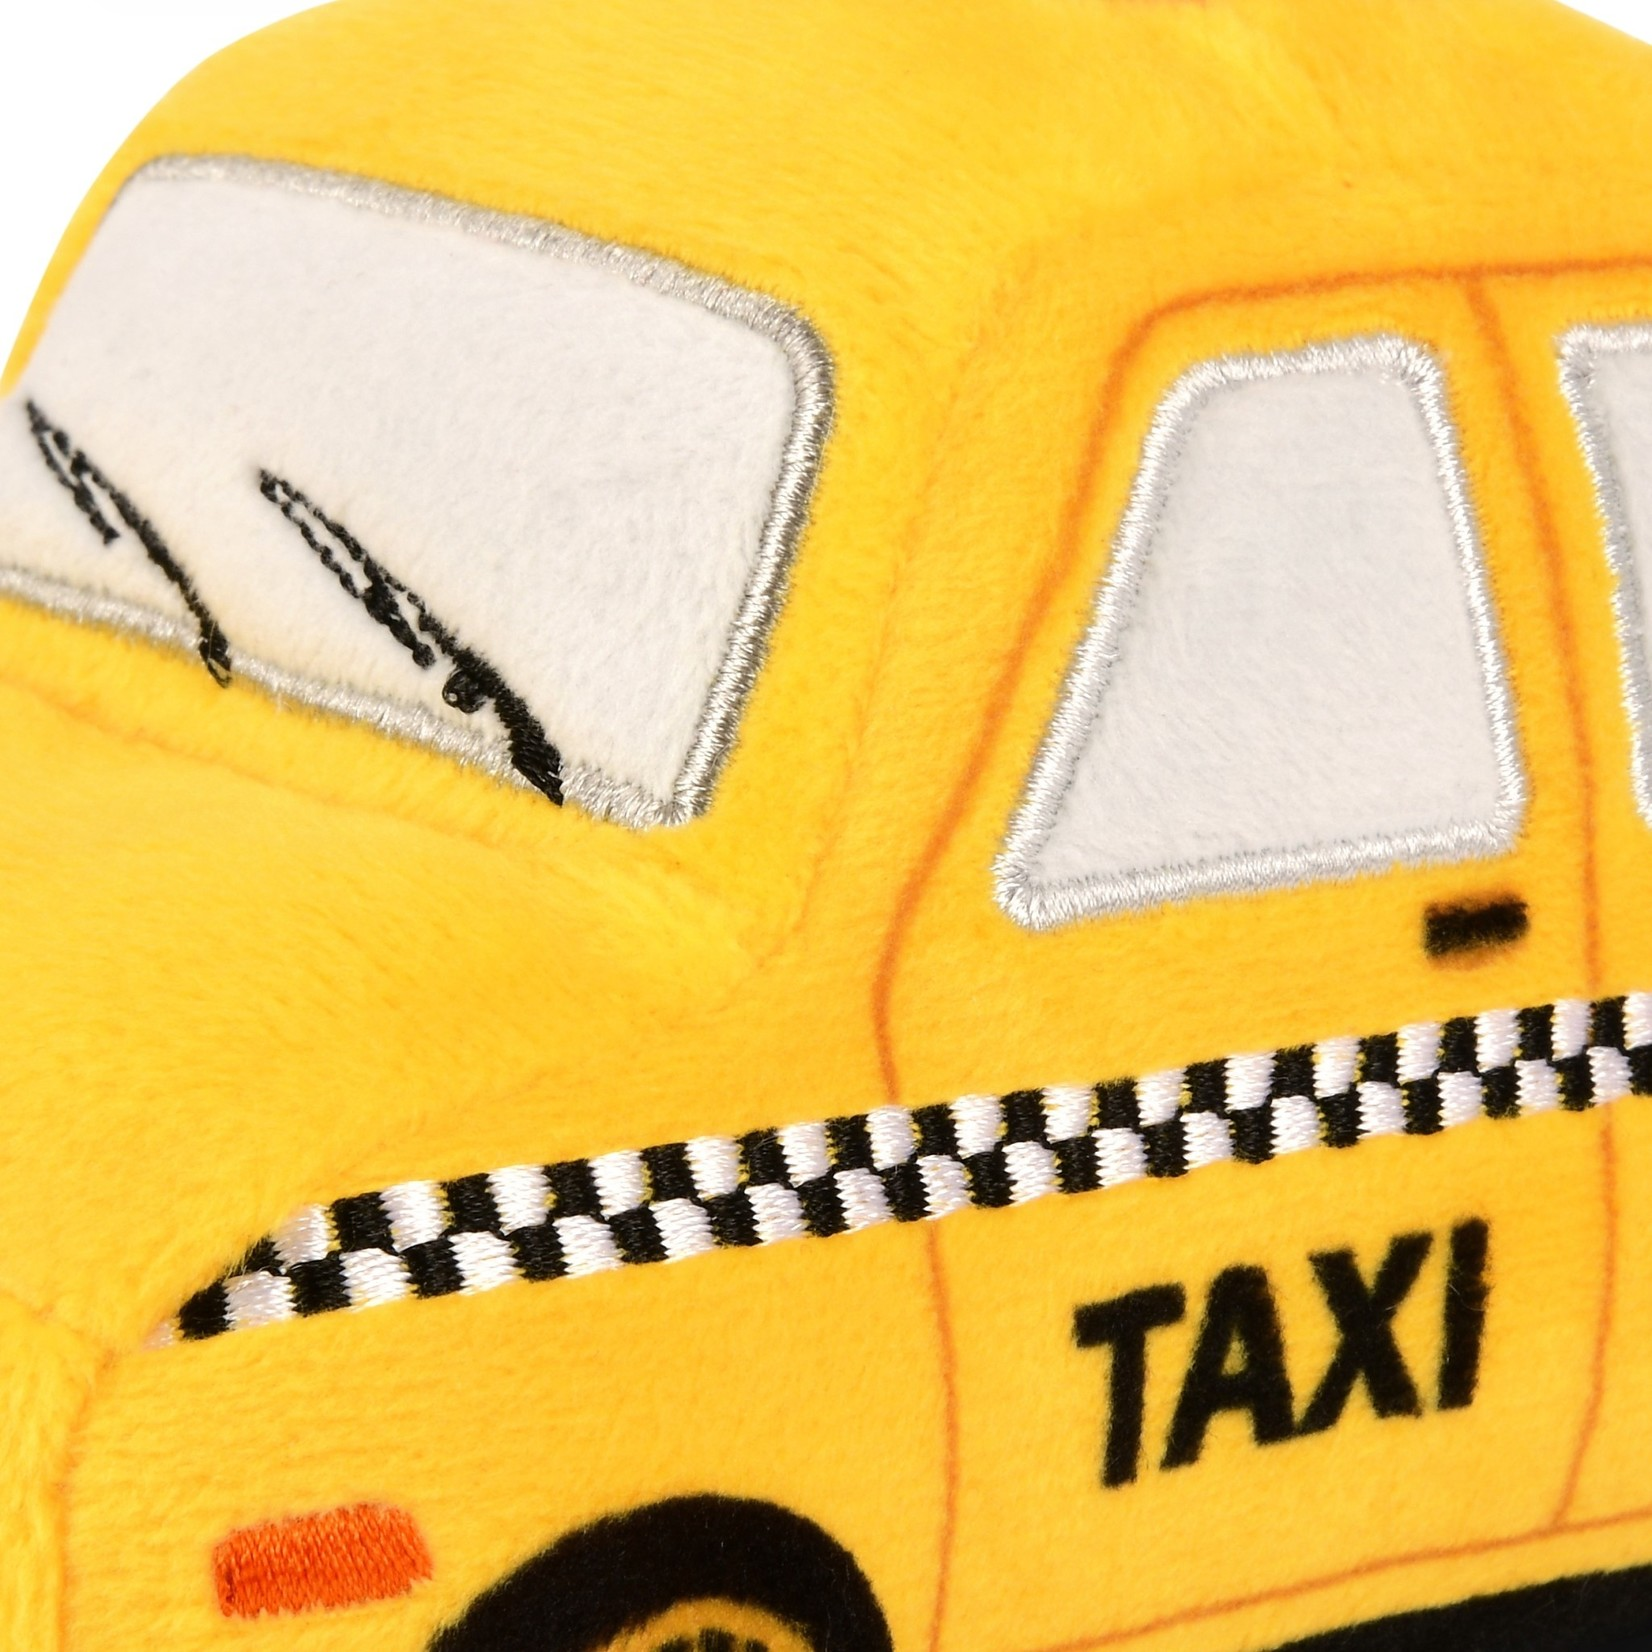 P.L.A.Y. P.L.A.Y. Canine Commute Taxi